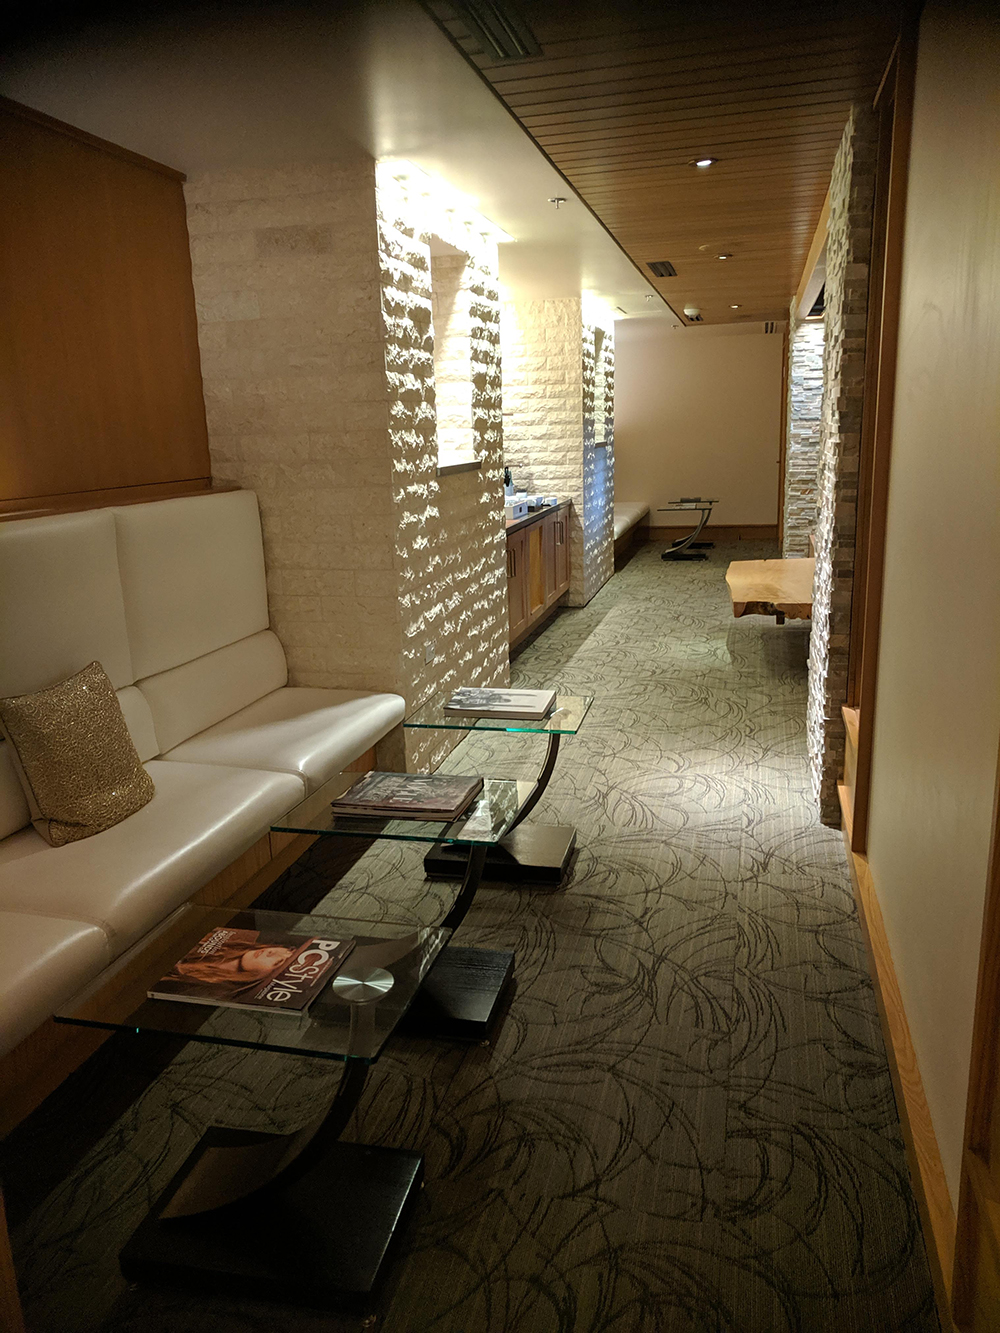 The spa's tea lounge offers tea, snacks, and comfortable seating for relaxation.